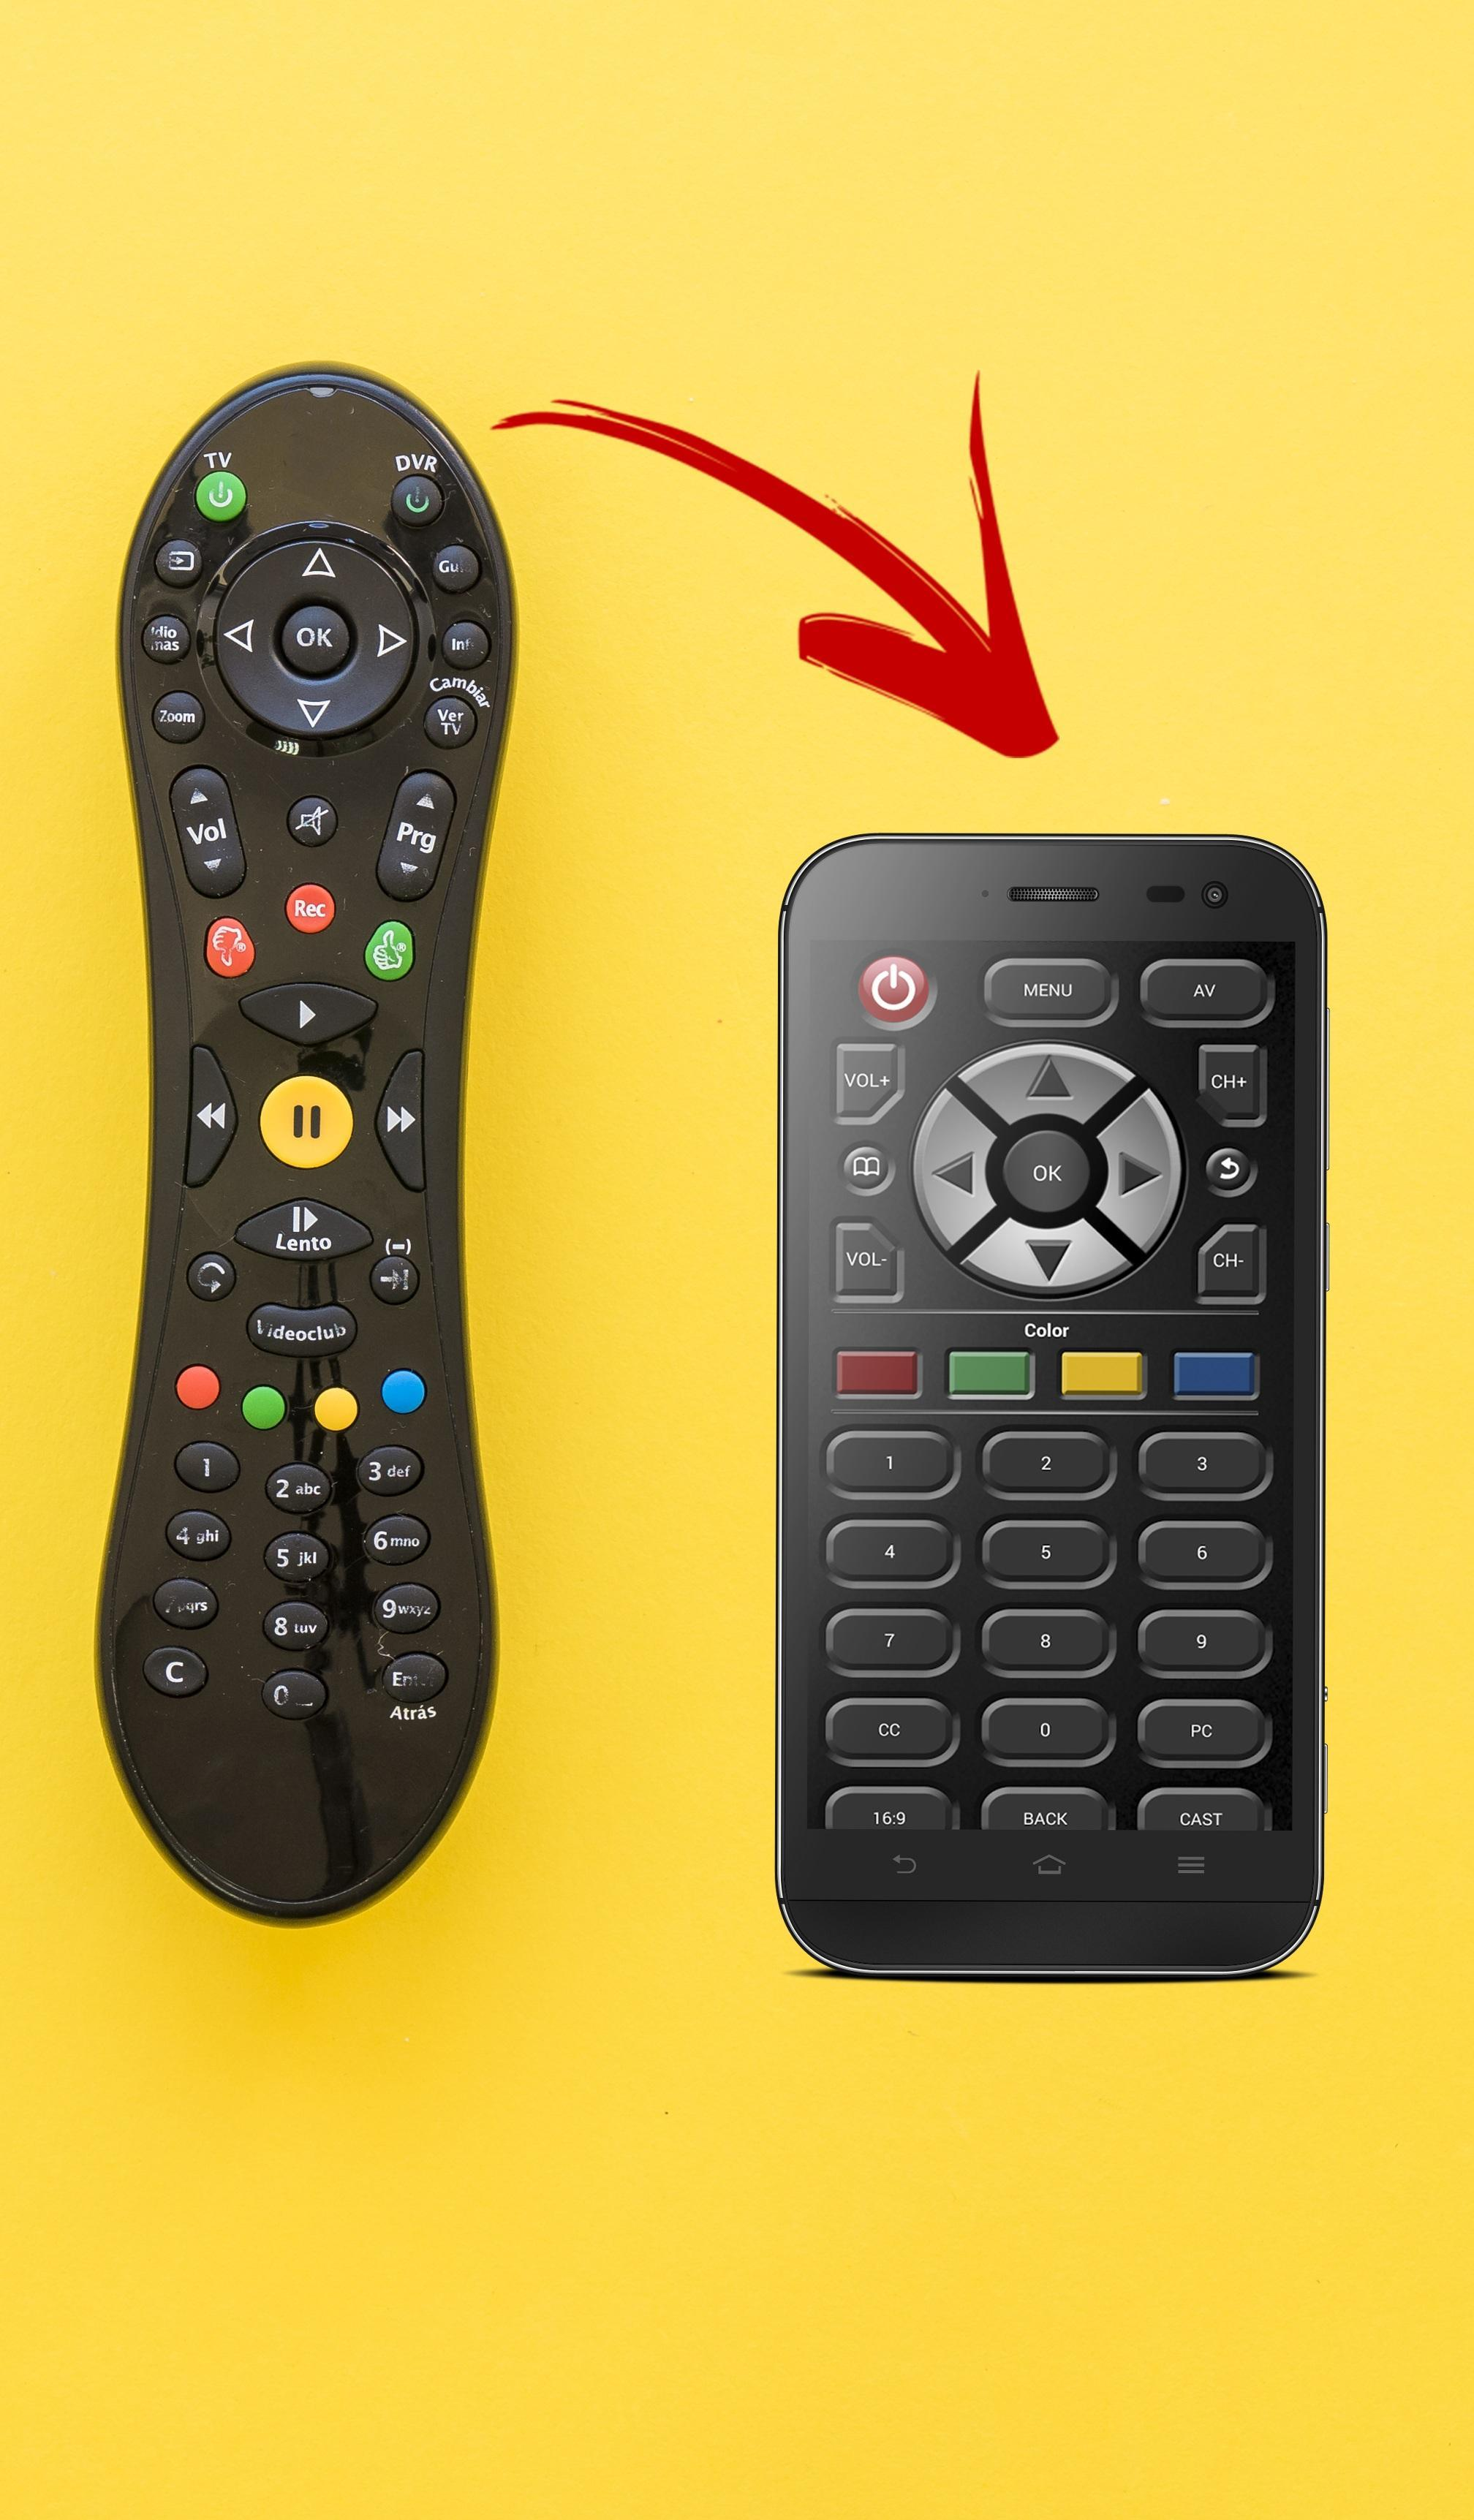 Tv Remote For Sanyo for Android - APK Download